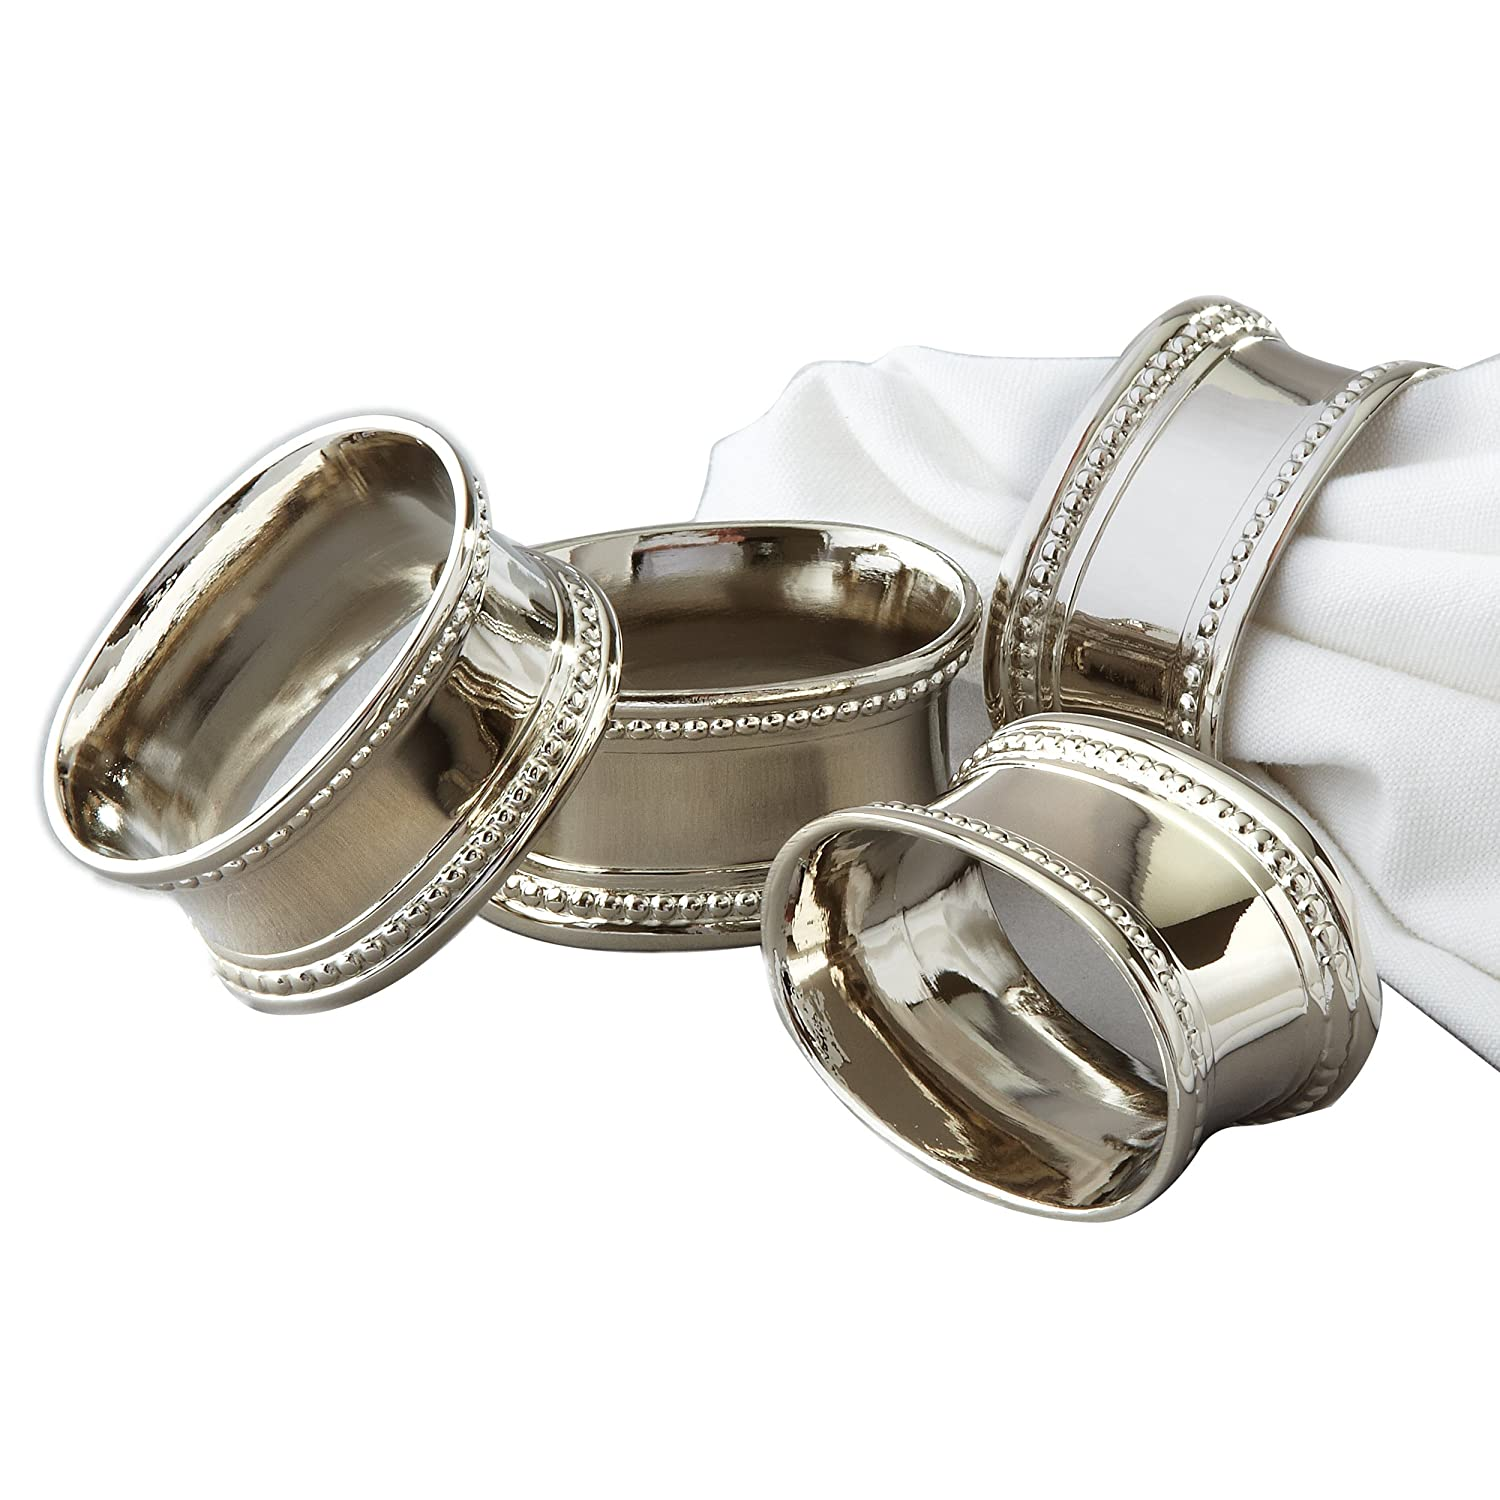 Elegance Beaded Round Napkin Rings, Silver-Plated, Set of 4 Leeber Limited USA 82214